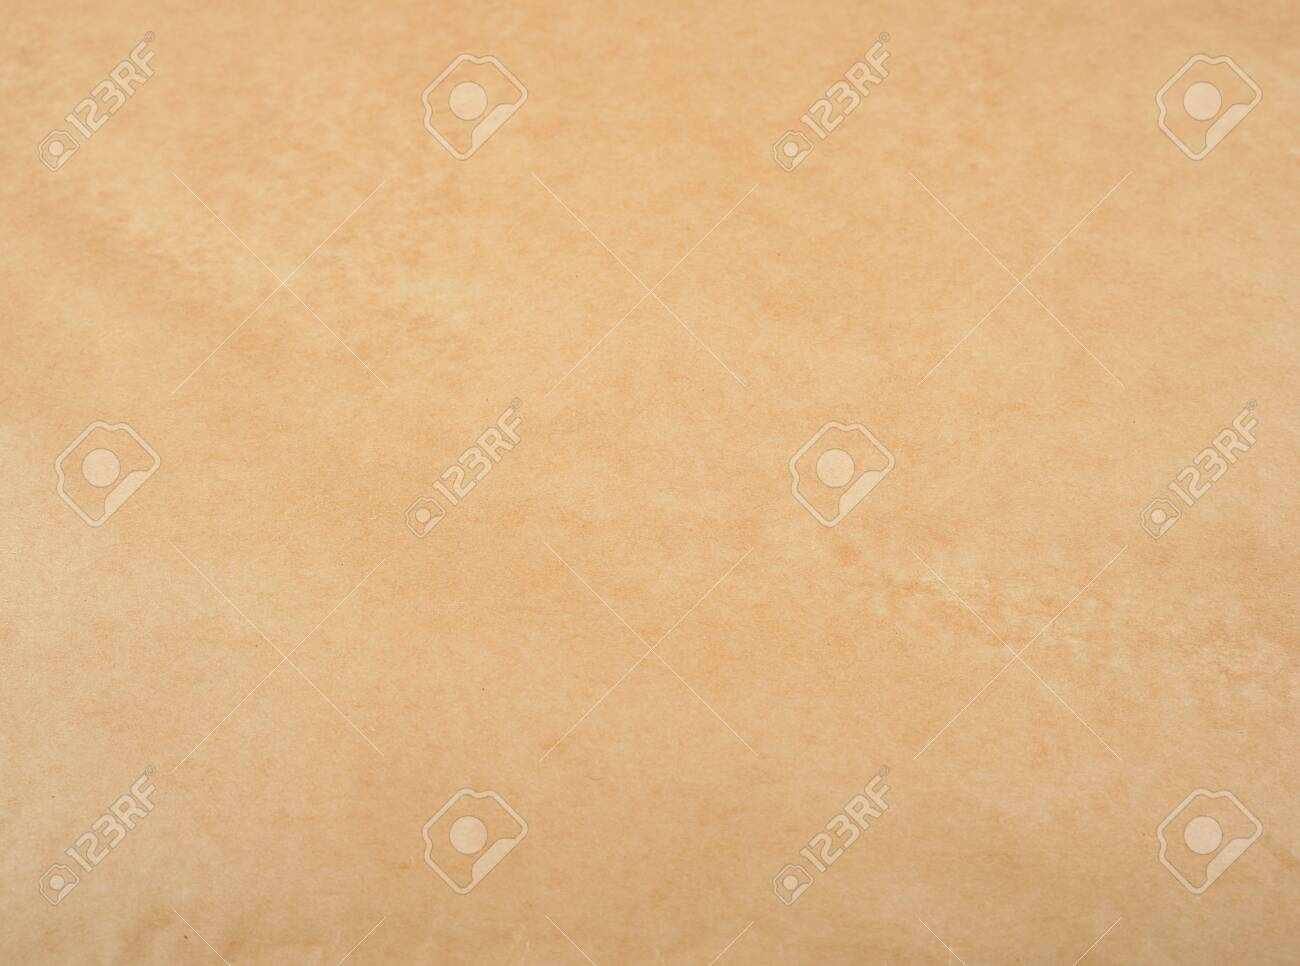 brown parchment paper texture, full frame - 122474250